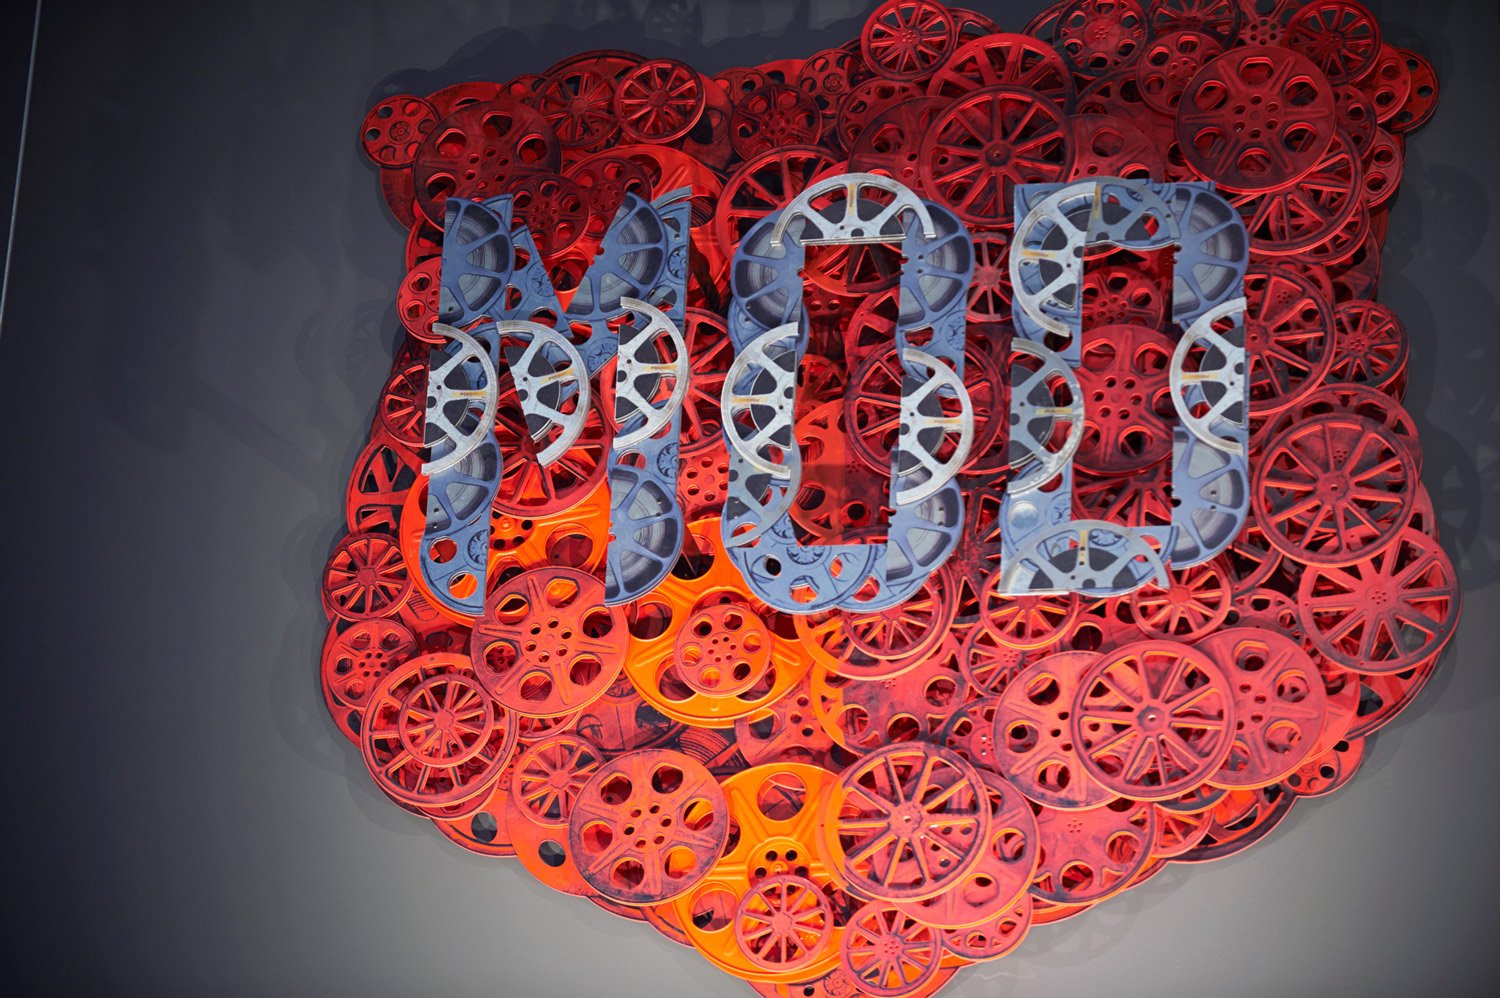 The MOD logo constructed from old film reels